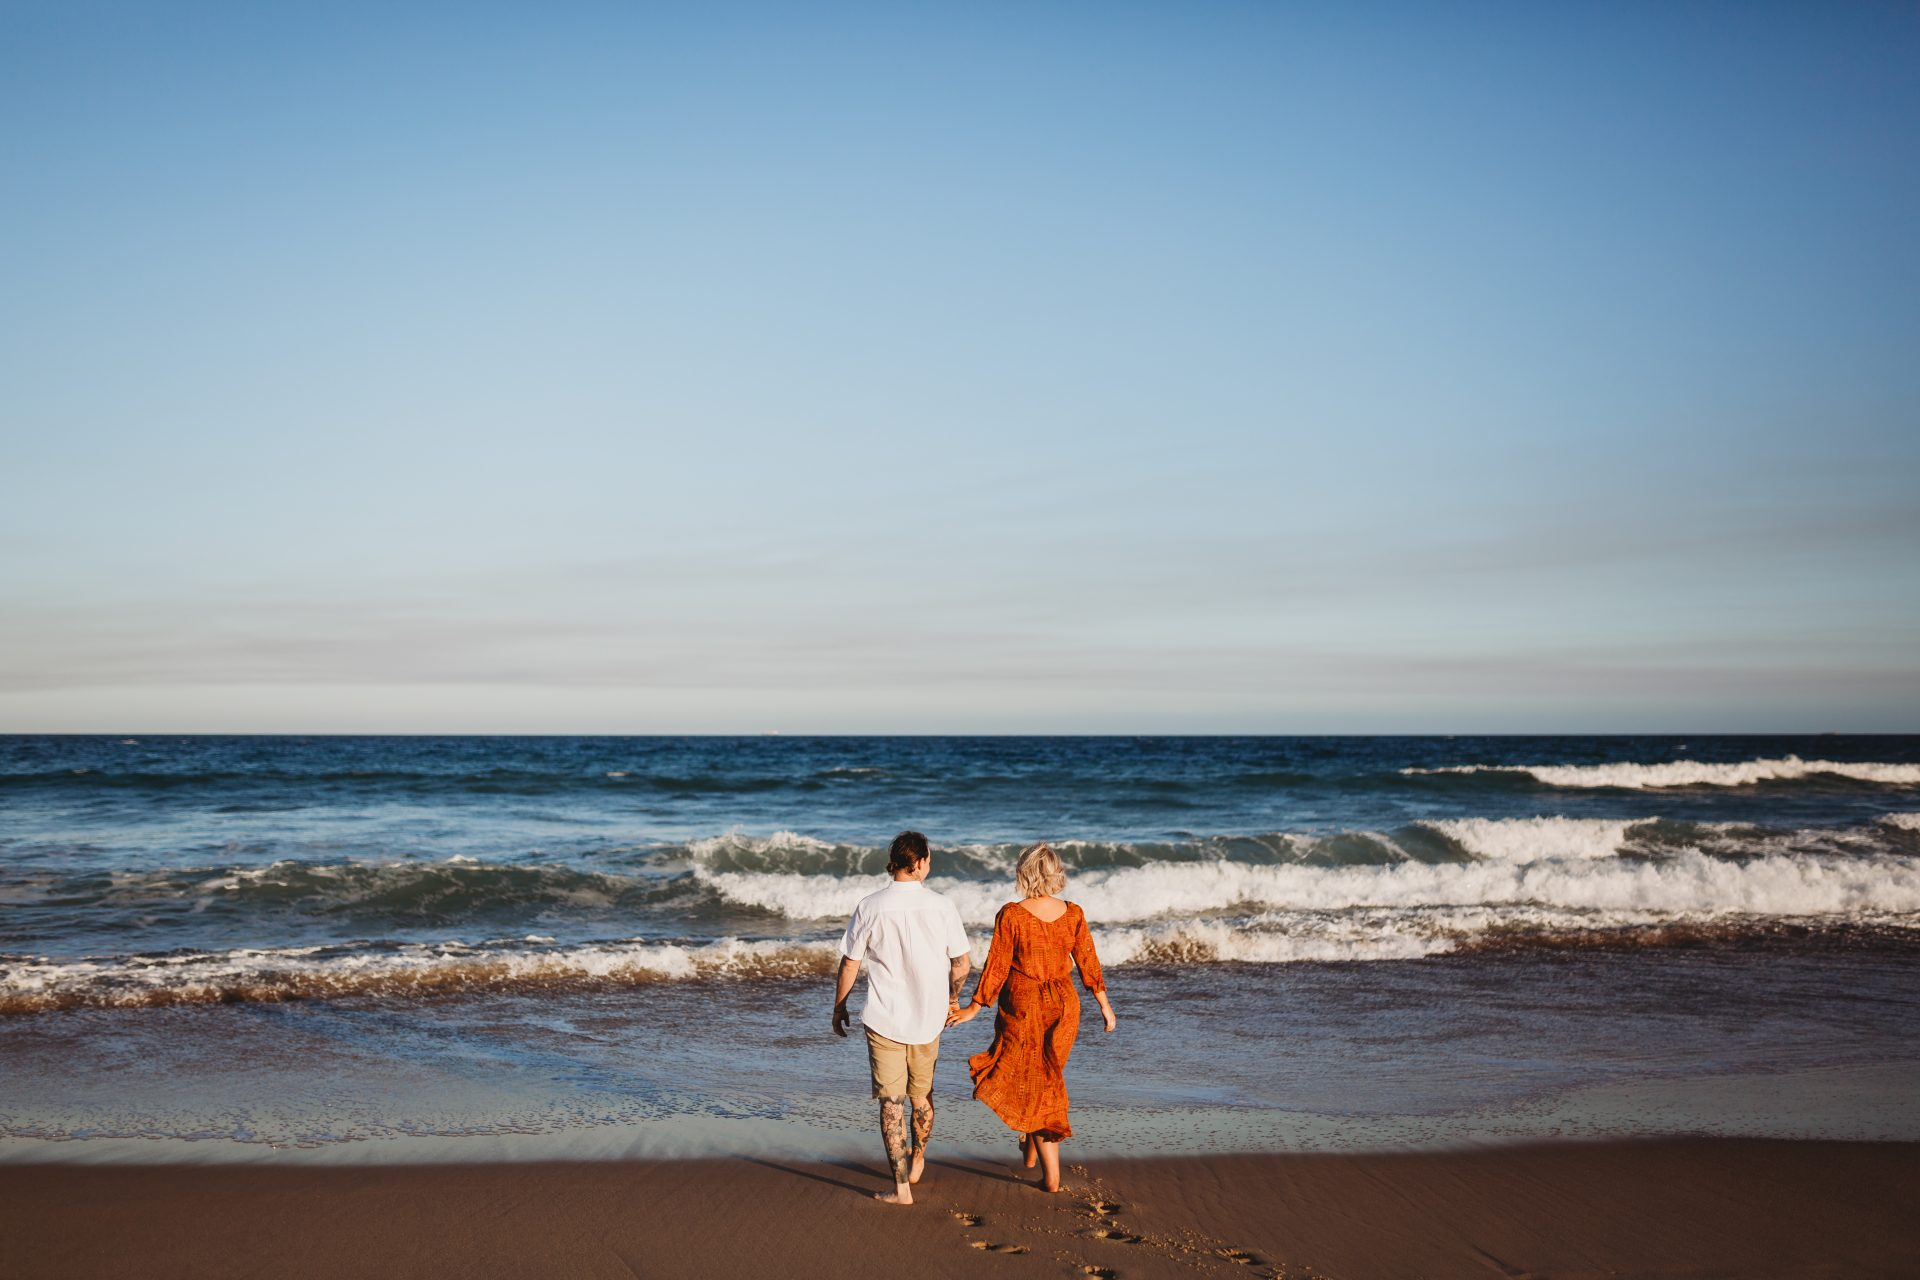 Young couple walking into the ocean at sunset, while holding hands